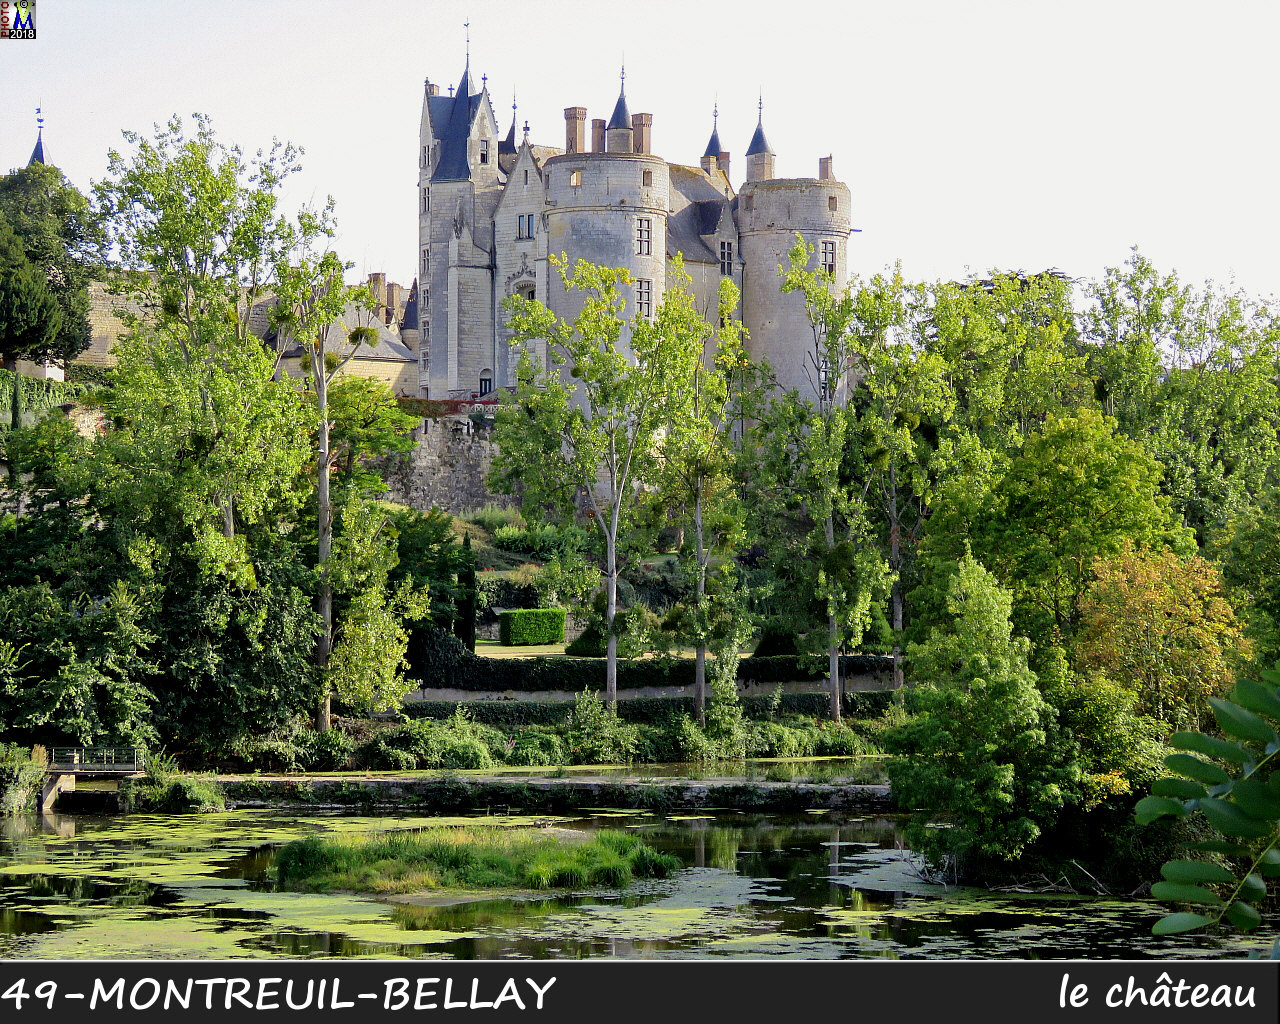 49MONTREUIL-BELLAY_chateau_1018.jpg